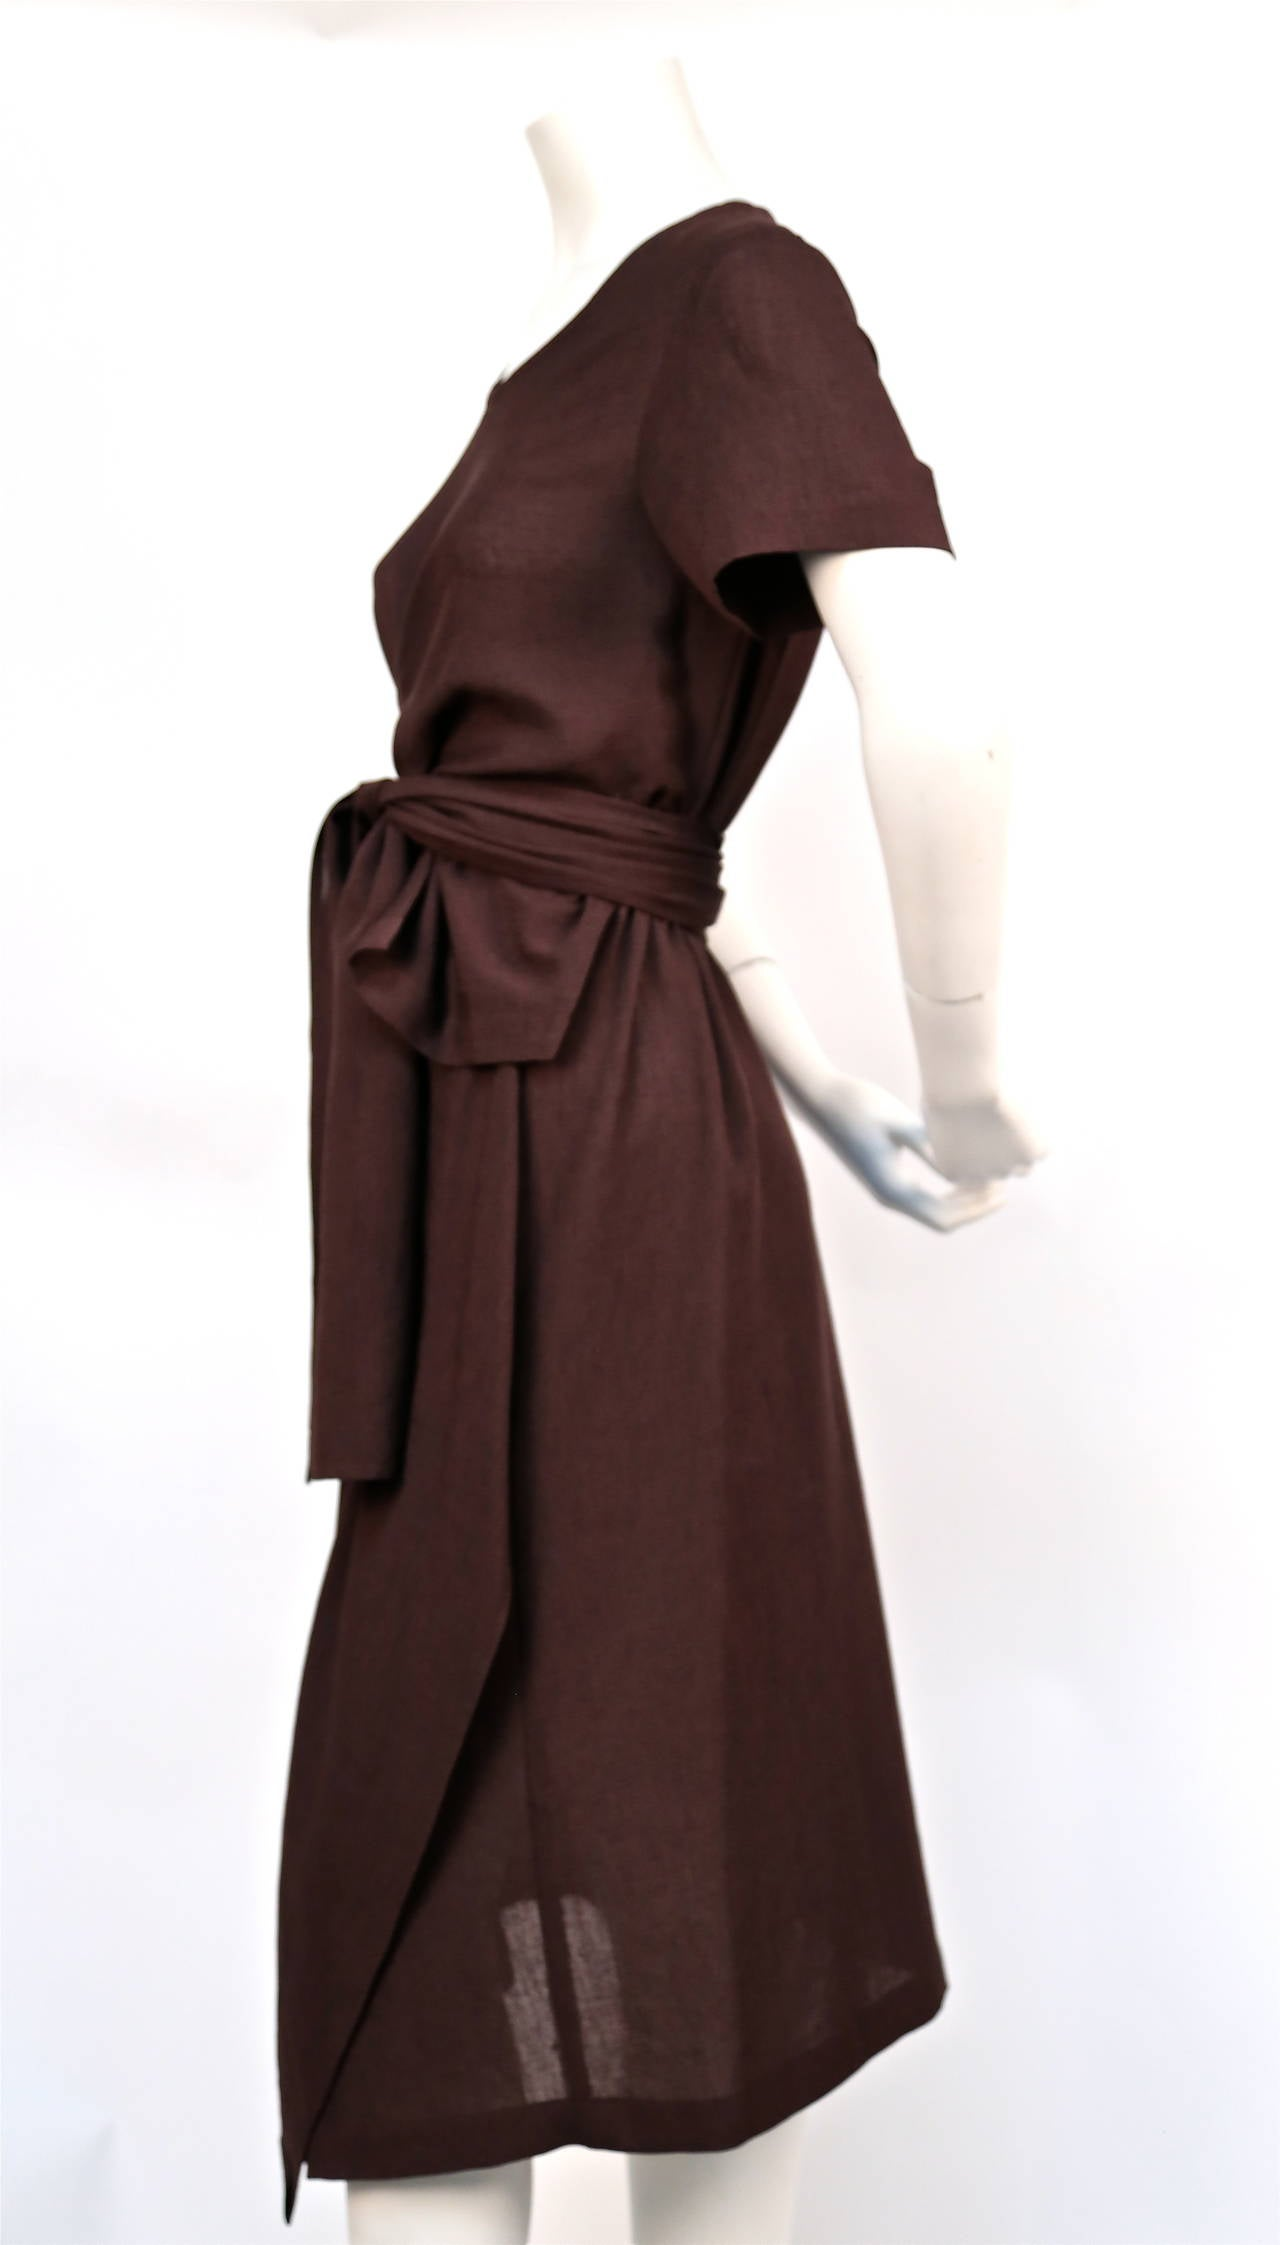 1997 COMME DES GARCONS brown draped dress with wrap waist 3